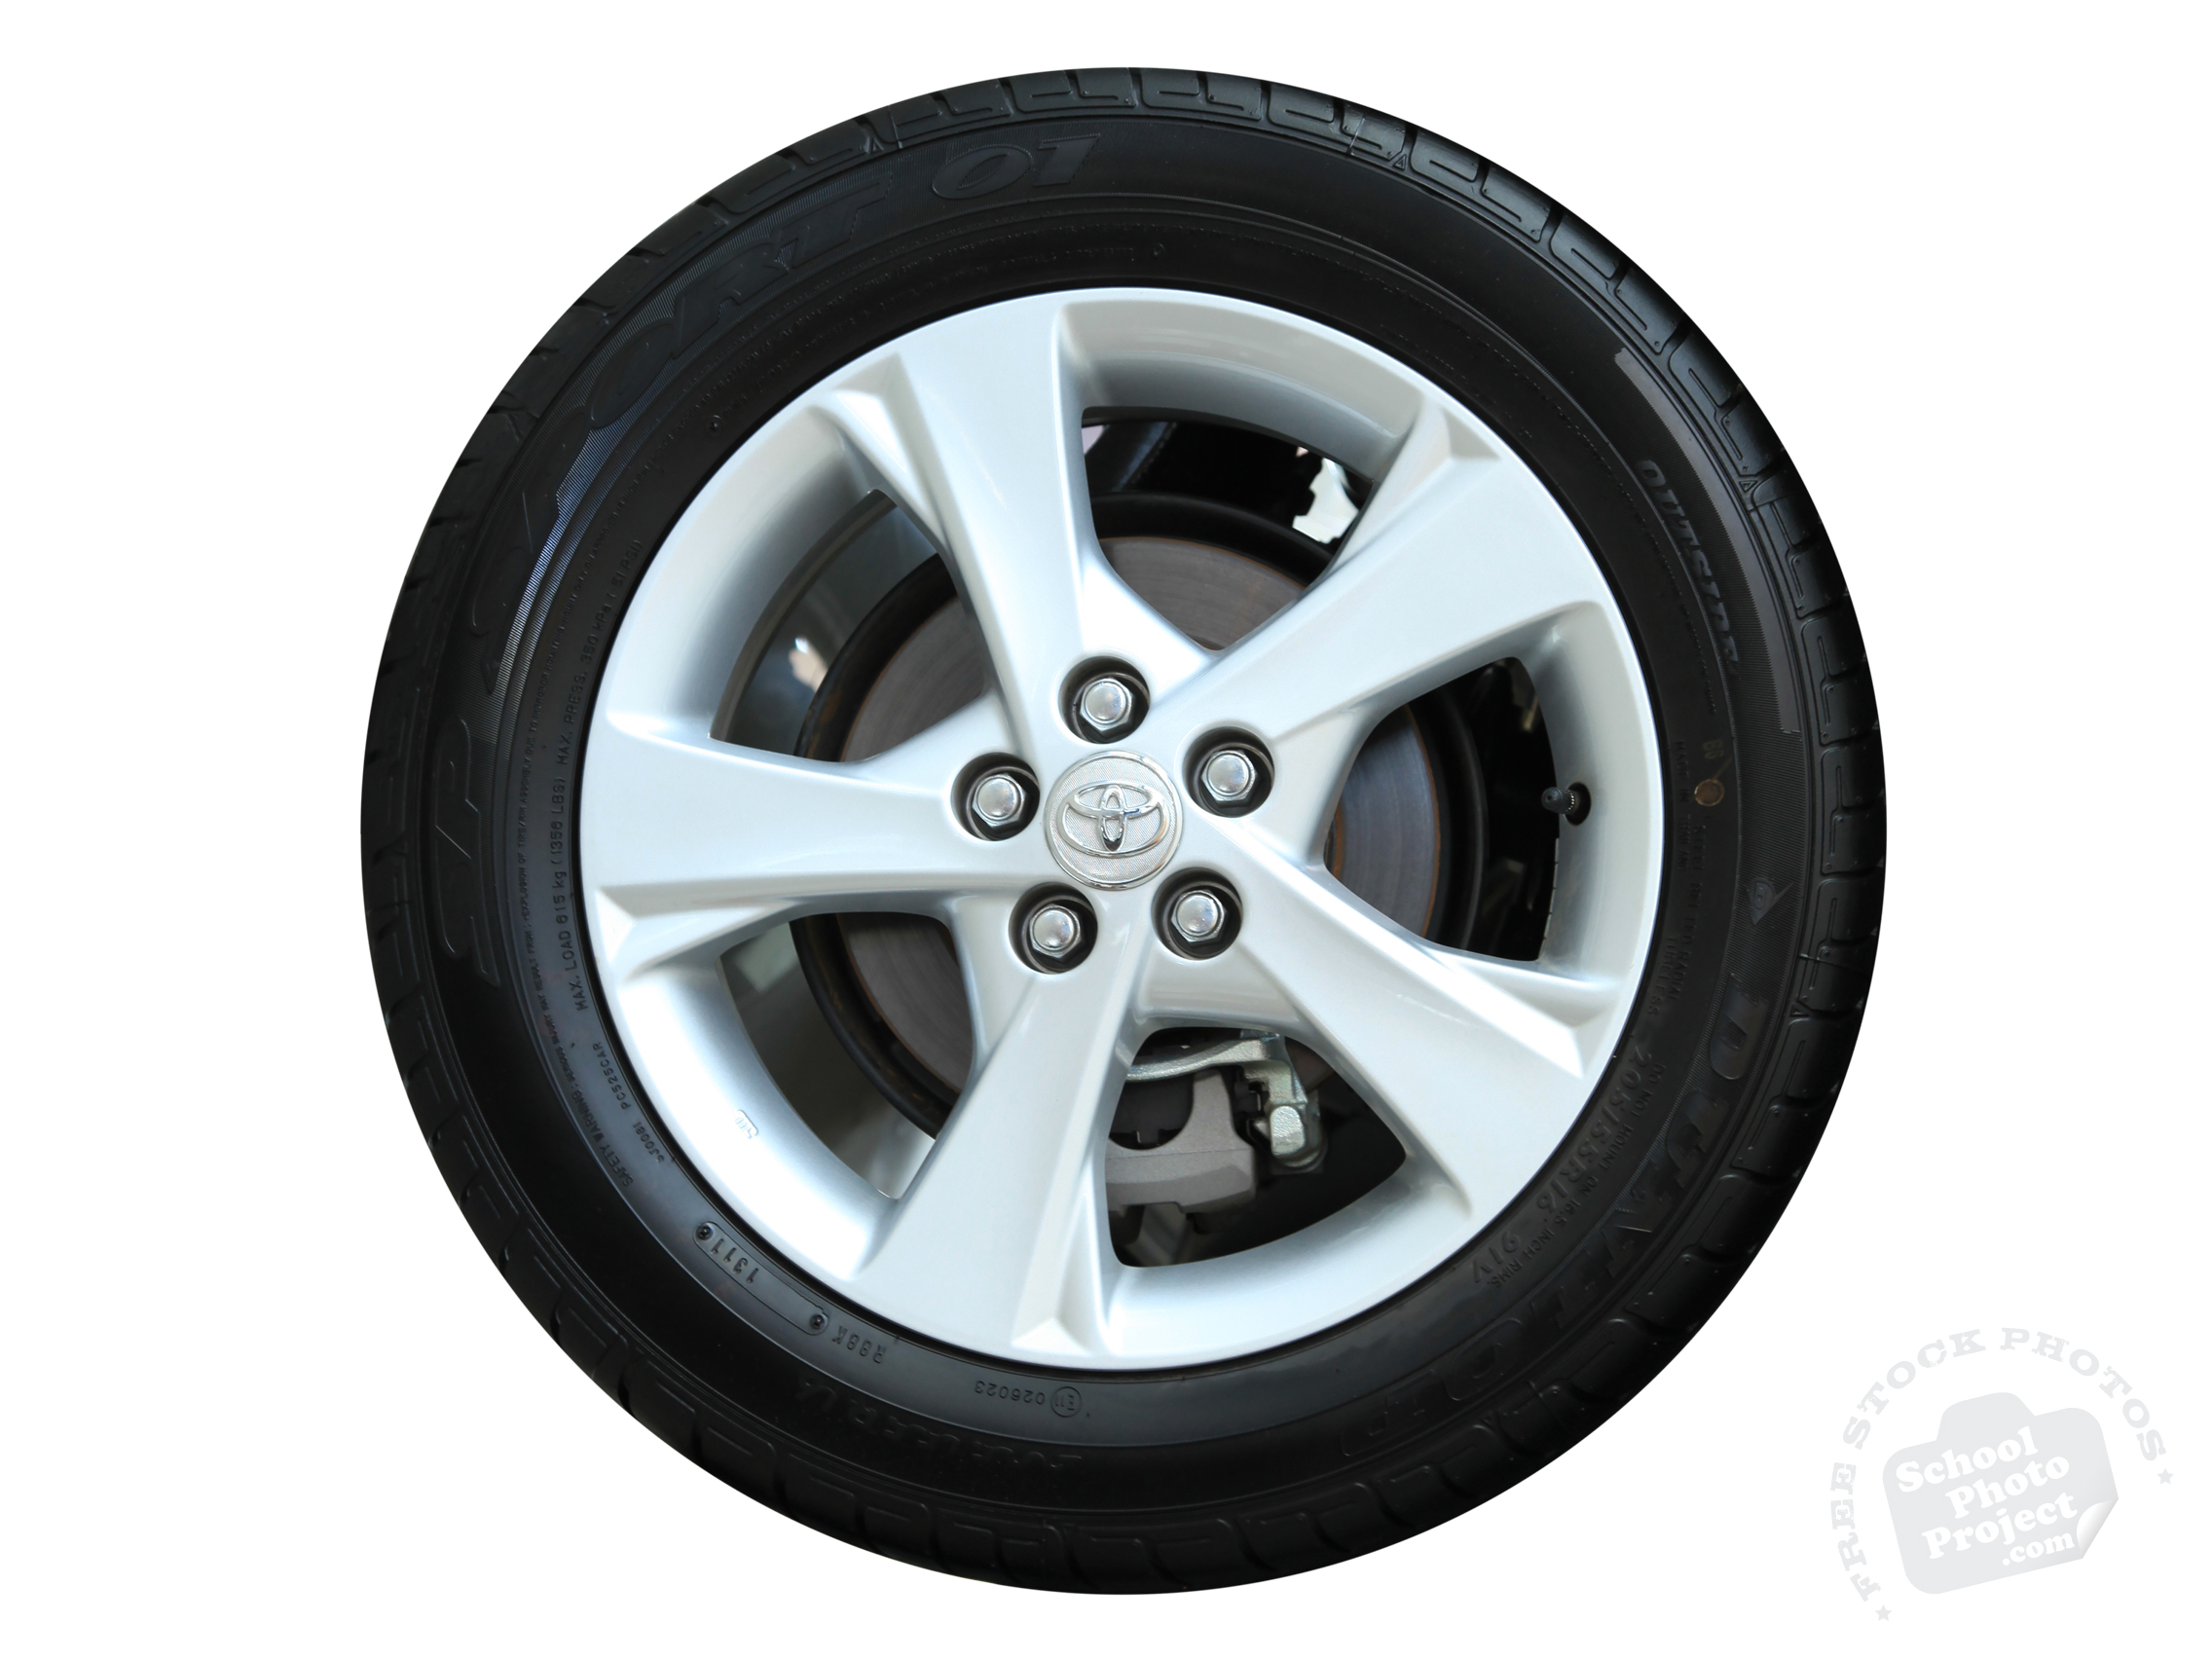 Car Tire Free Stock Photo Image Picture Toyota Car Tire Royalty